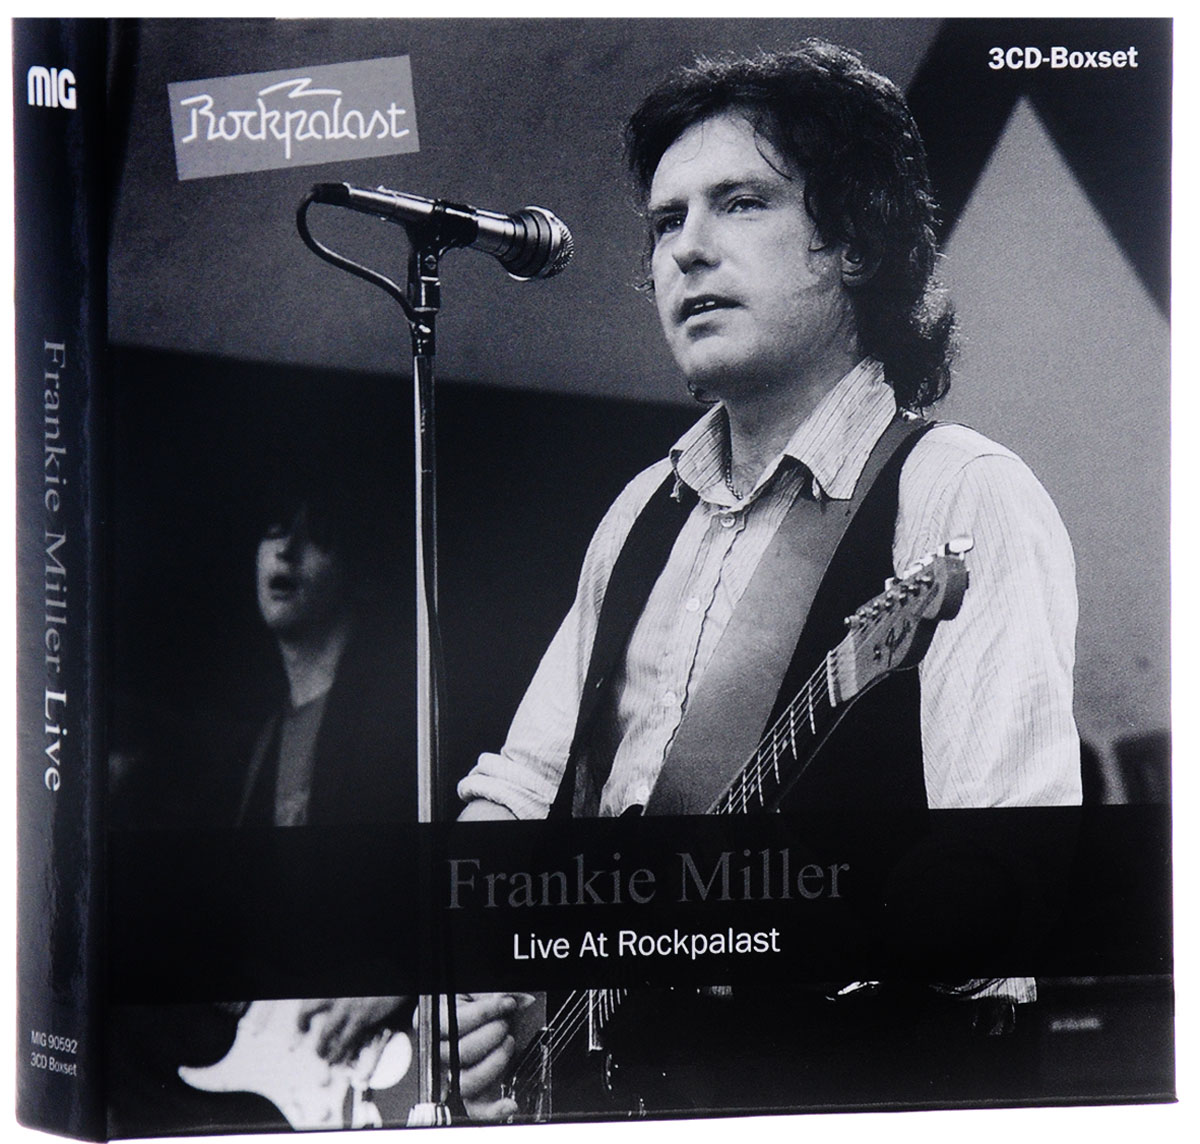 Фрэнки Миллер,Ed Deane,Mick Weaver,Chrissie Stewart,Malcom Mortimore,Ray Minhinnit,James Hall,Graham Deacon,Steve Simpson,Nick Judd,Tex Commer,Fran Bryne Frankie Miller. Live At Rockpalast (3 CD)